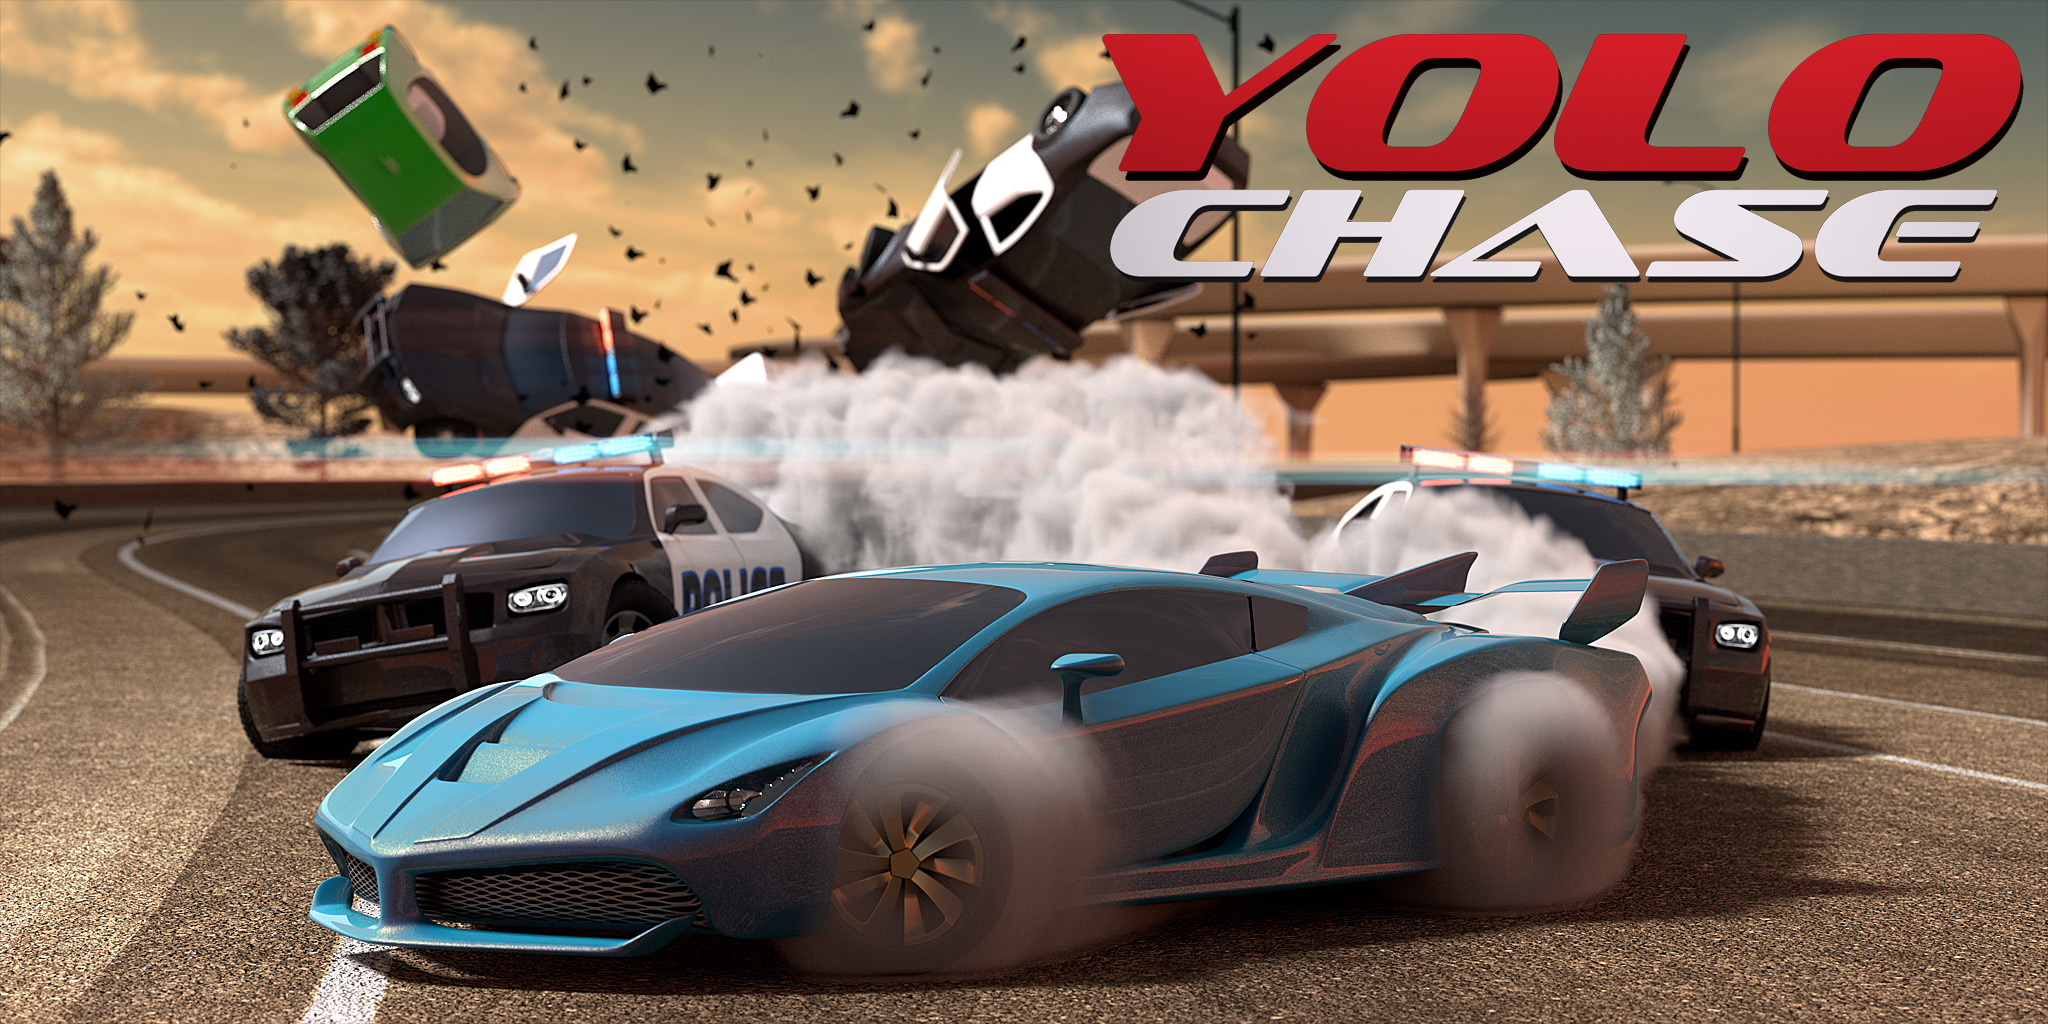 press_images_yolo_chase_1.jpg